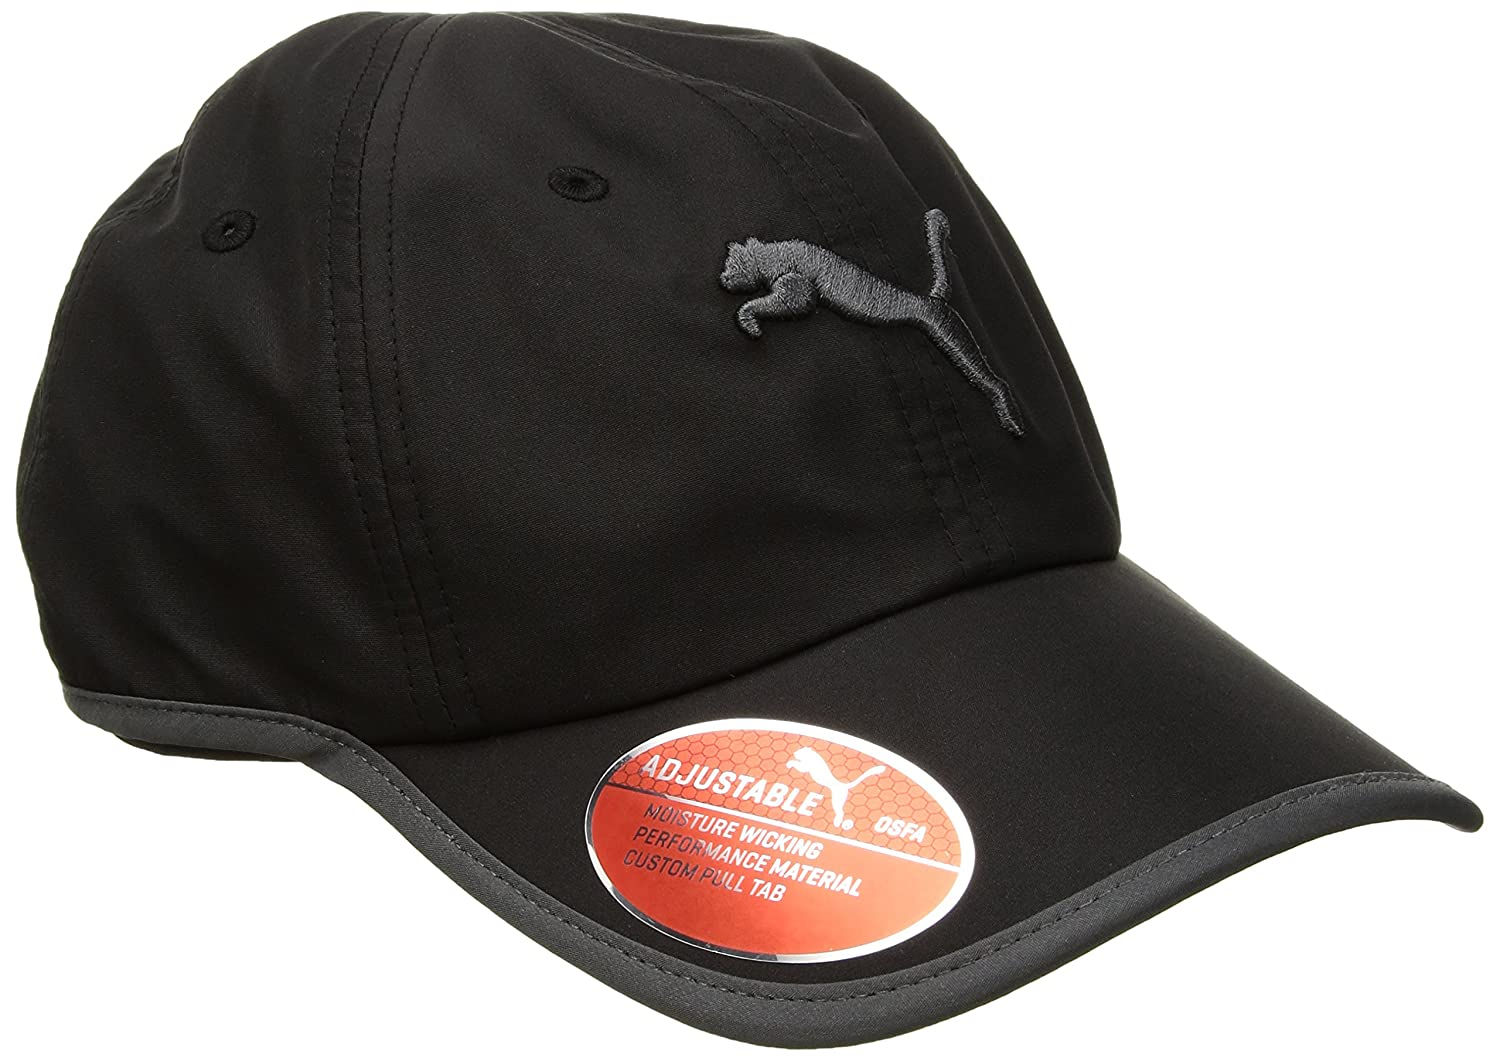 finest selection 1ea26 f0c97 Amazon.com  PUMA Women s Evercat Running Cap, Black Grey, OS  Clothing